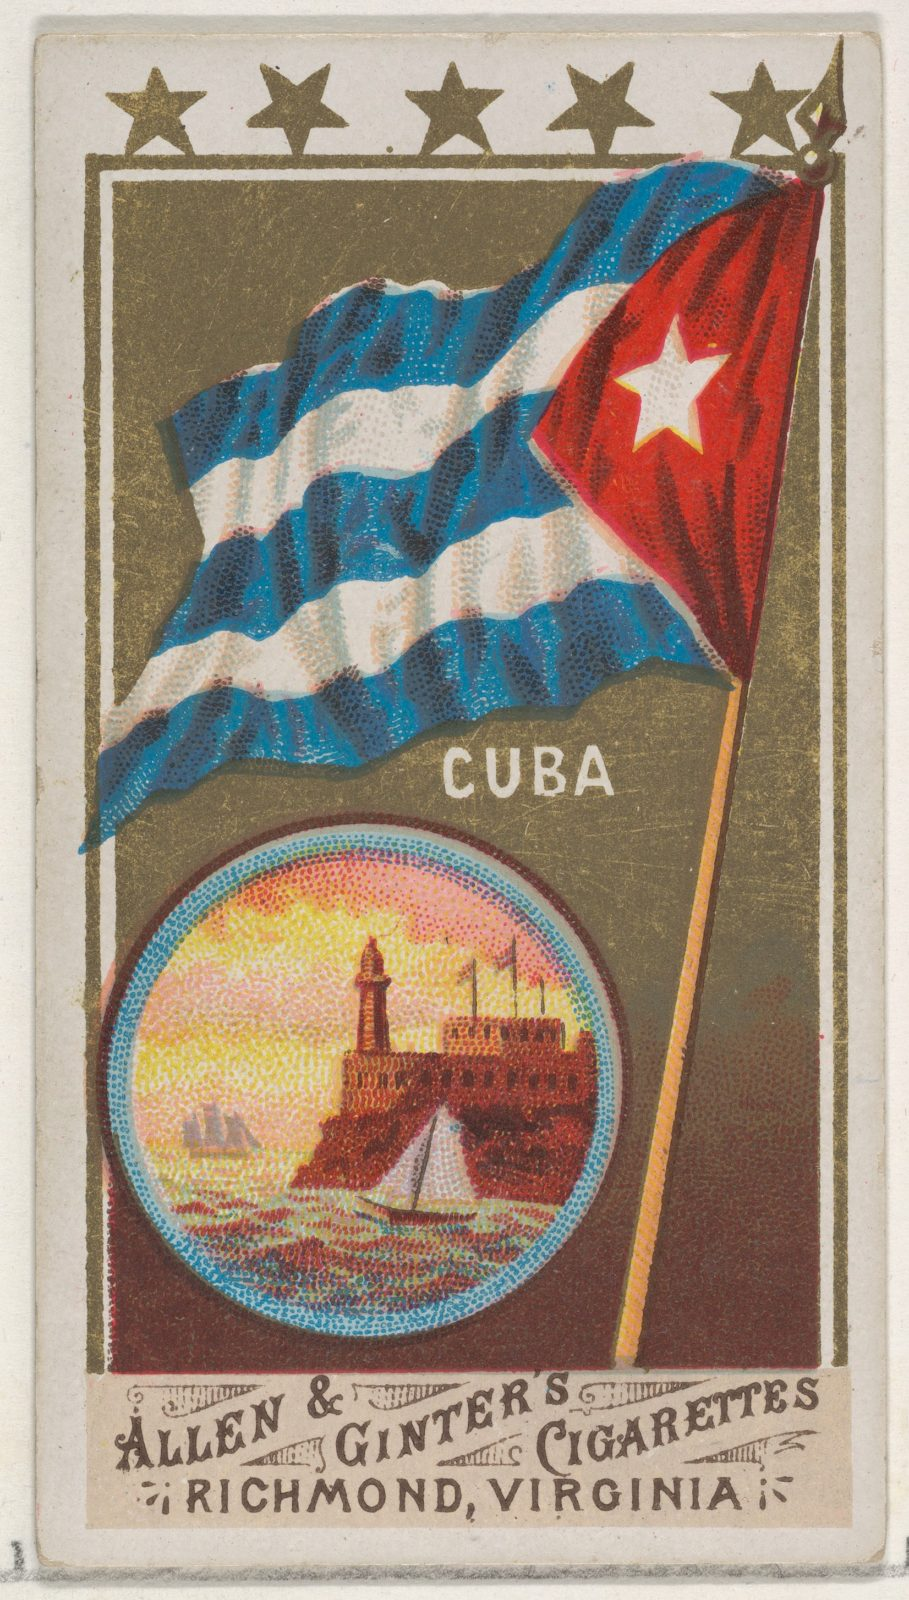 Cuba, from Flags of All Nations, Series 1 (N9) for Allen & Ginter Cigarettes Brands